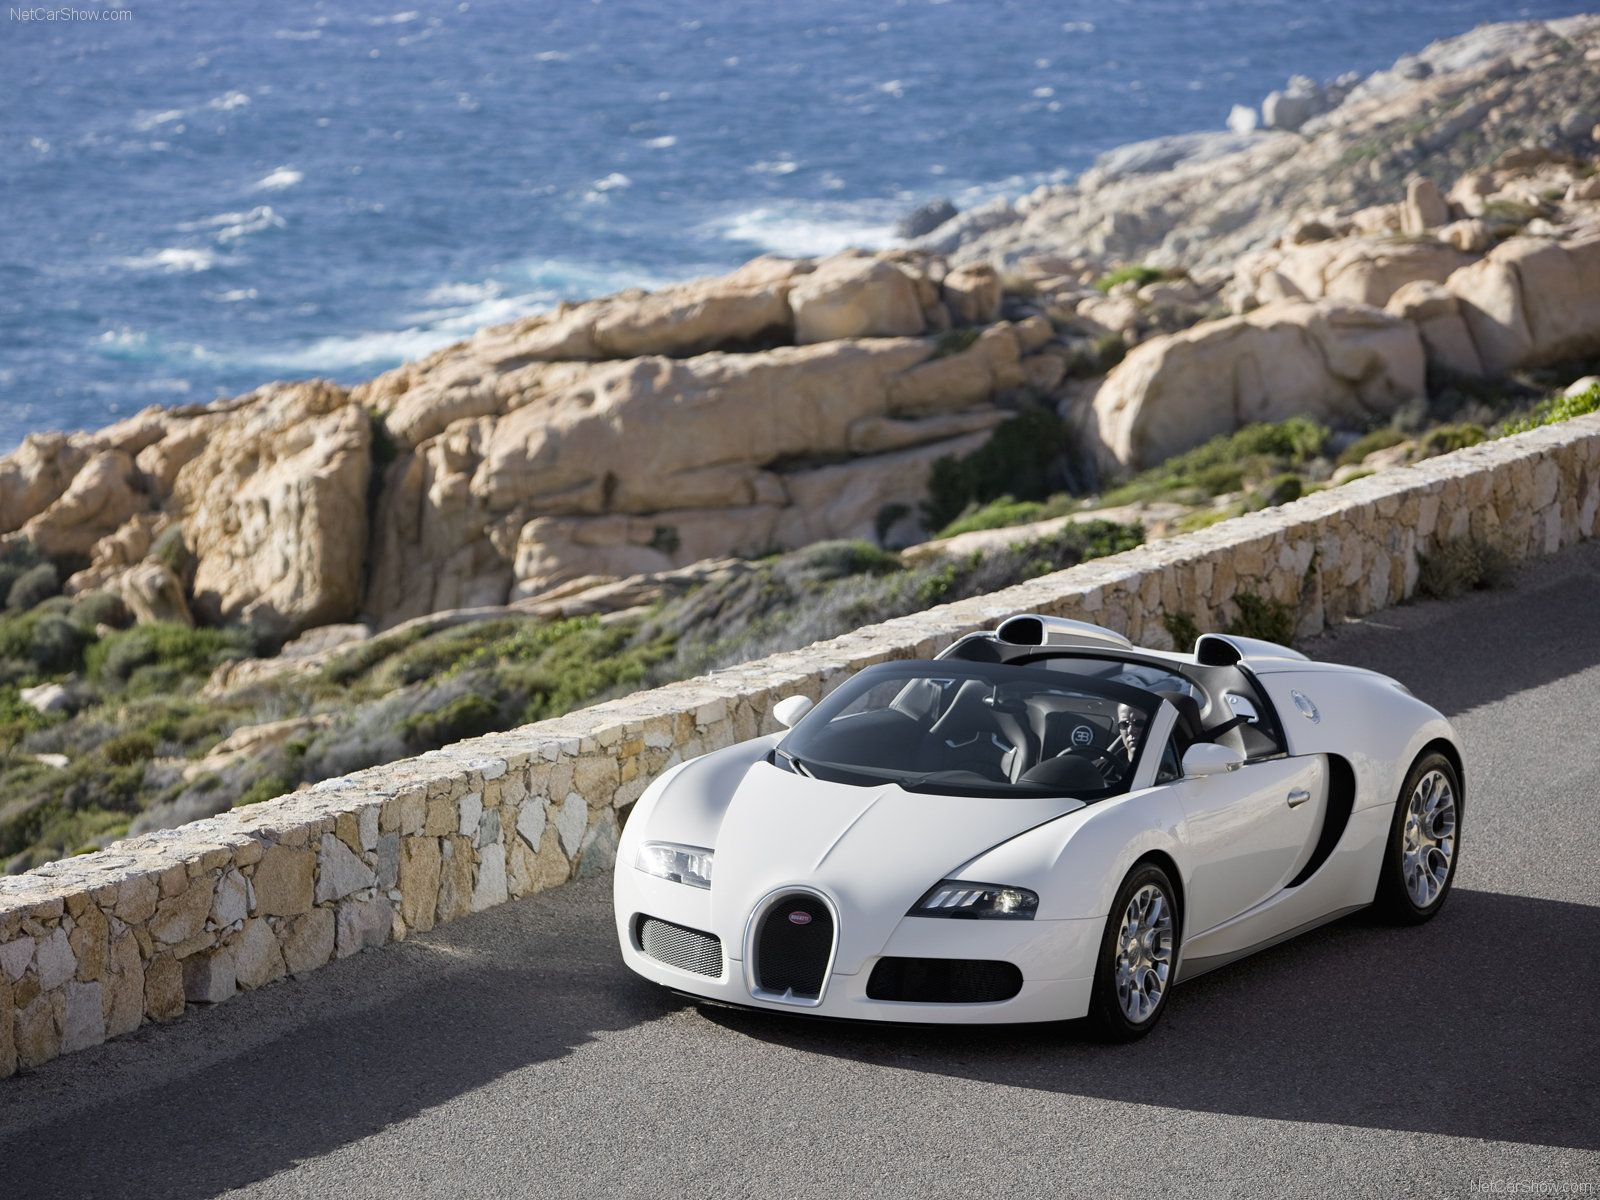 59ba10ecb84a244061581175ccdb0ce6 Cool Bugatti Veyron Price In Uae 2015 Cars Trend